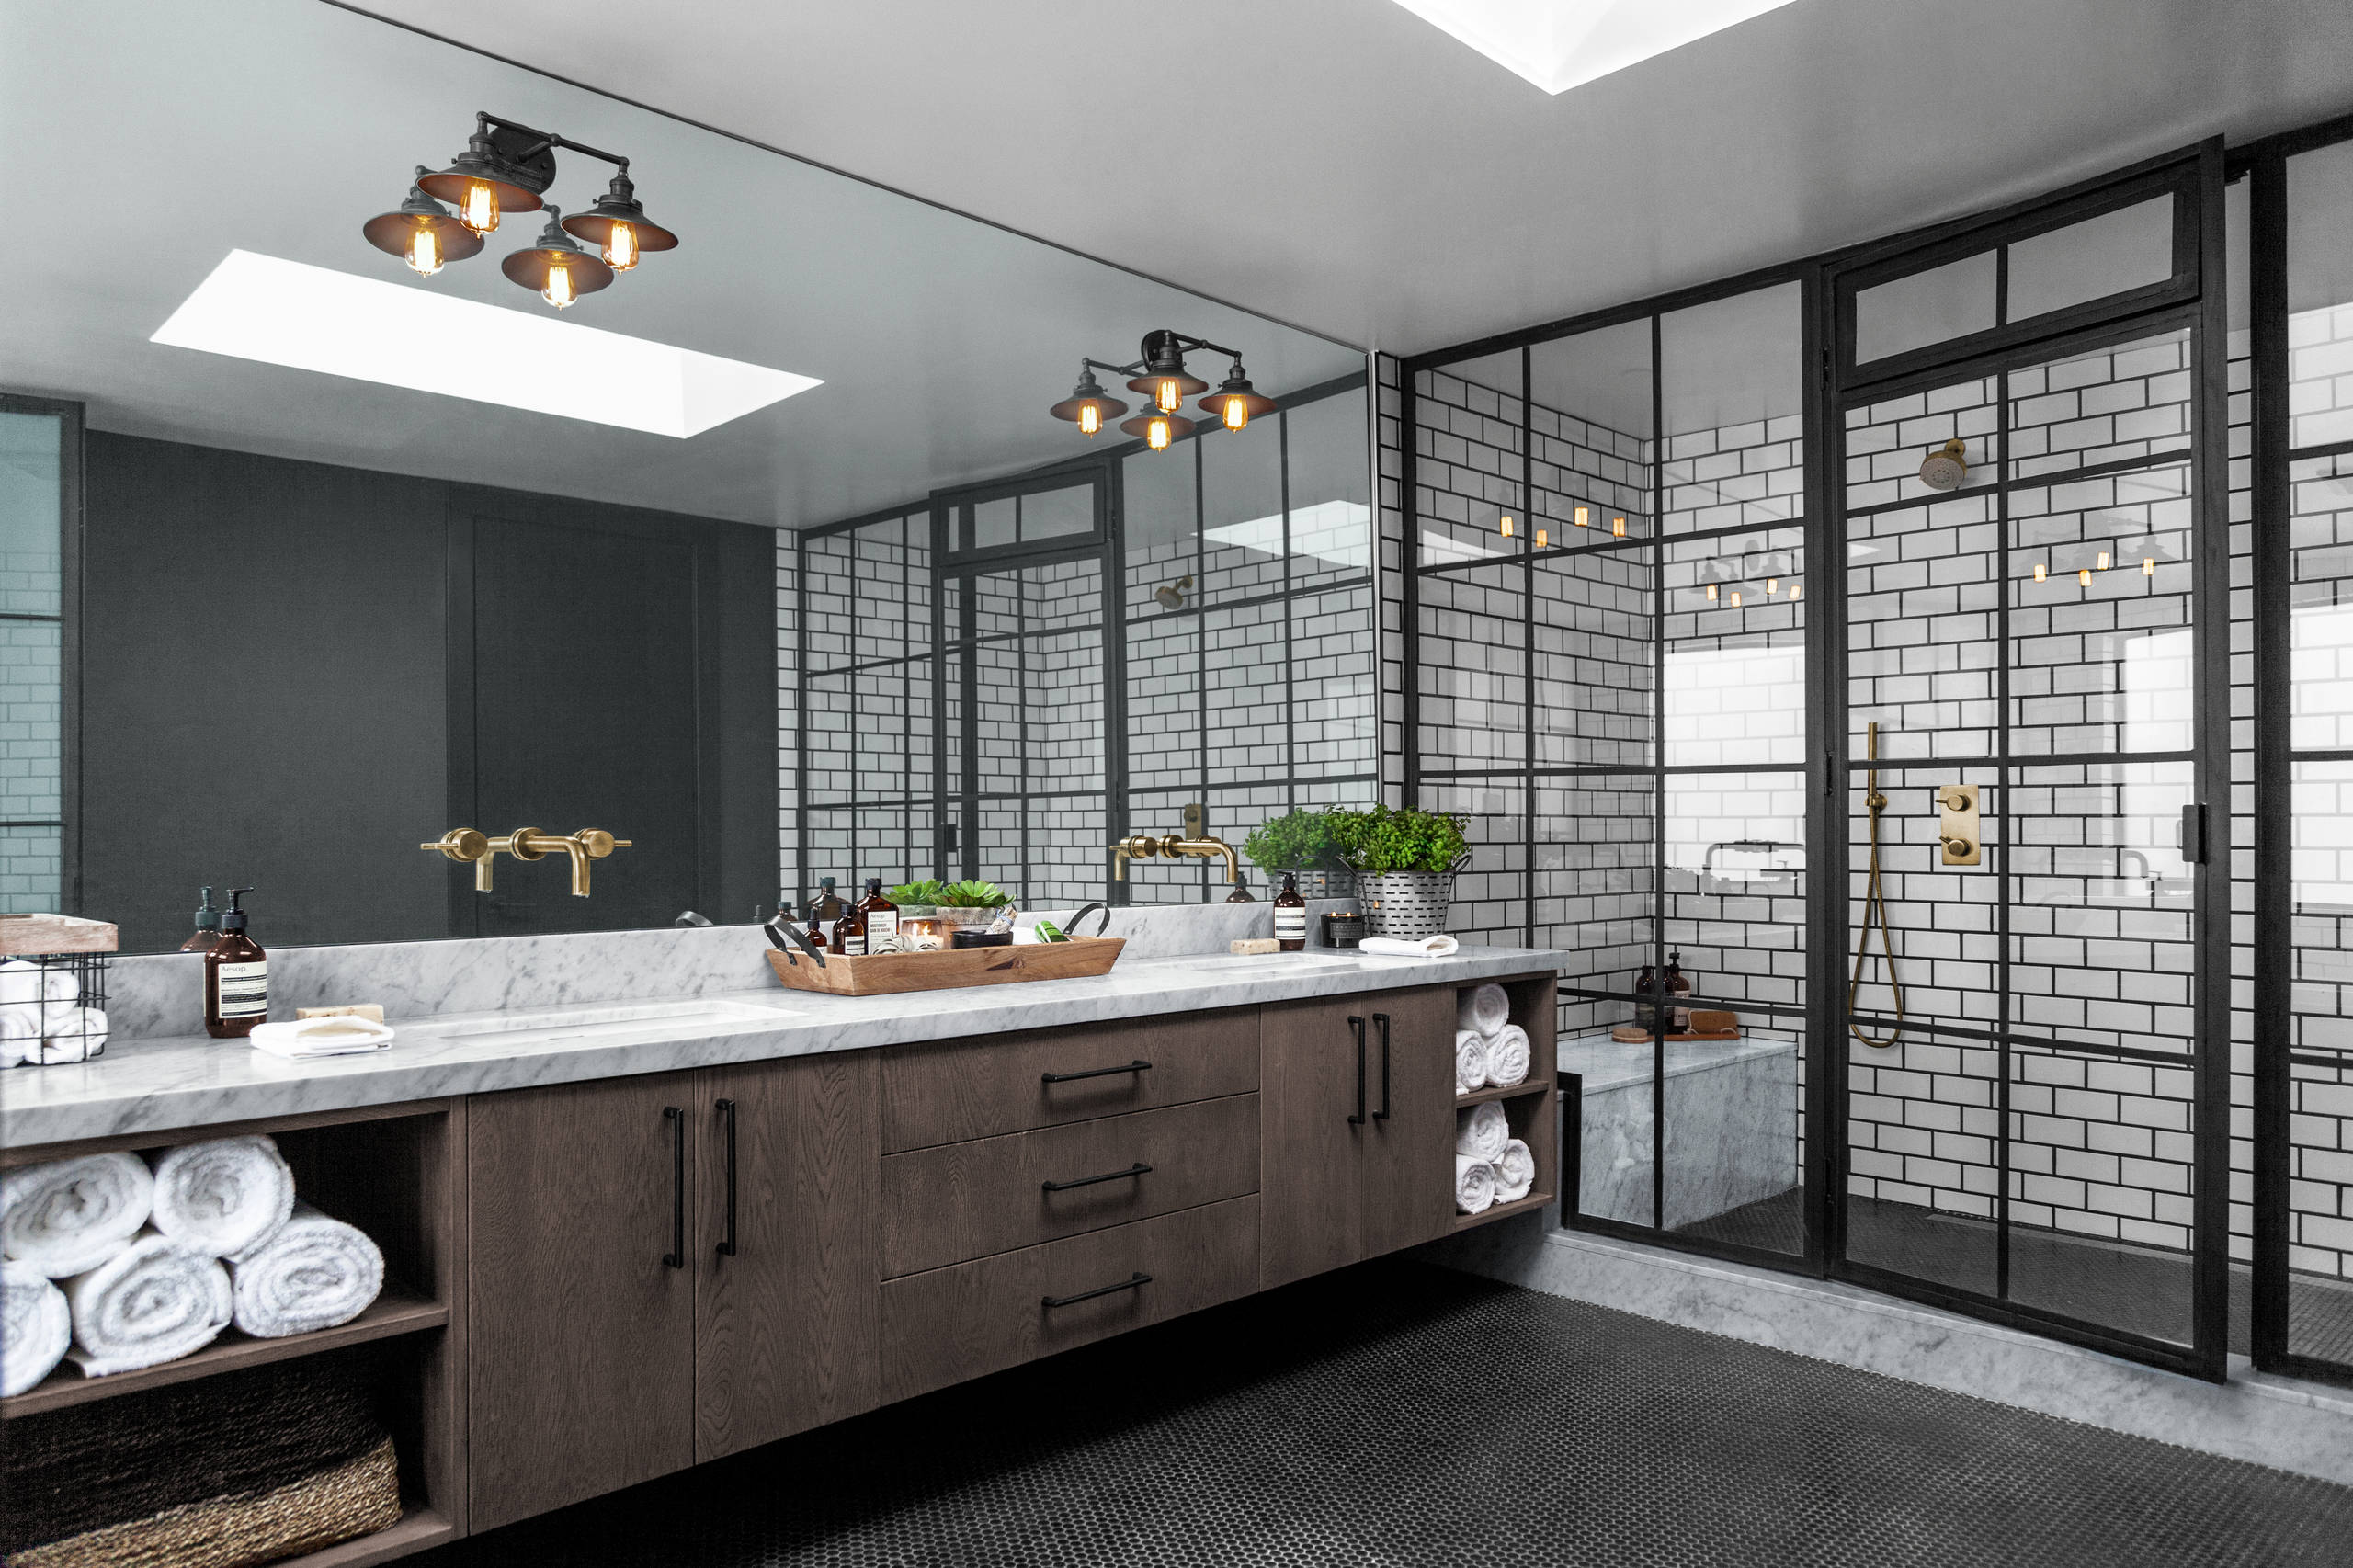 Must See Industrial Bathroom Pictures Ideas Before You Renovate 2020 Houzz